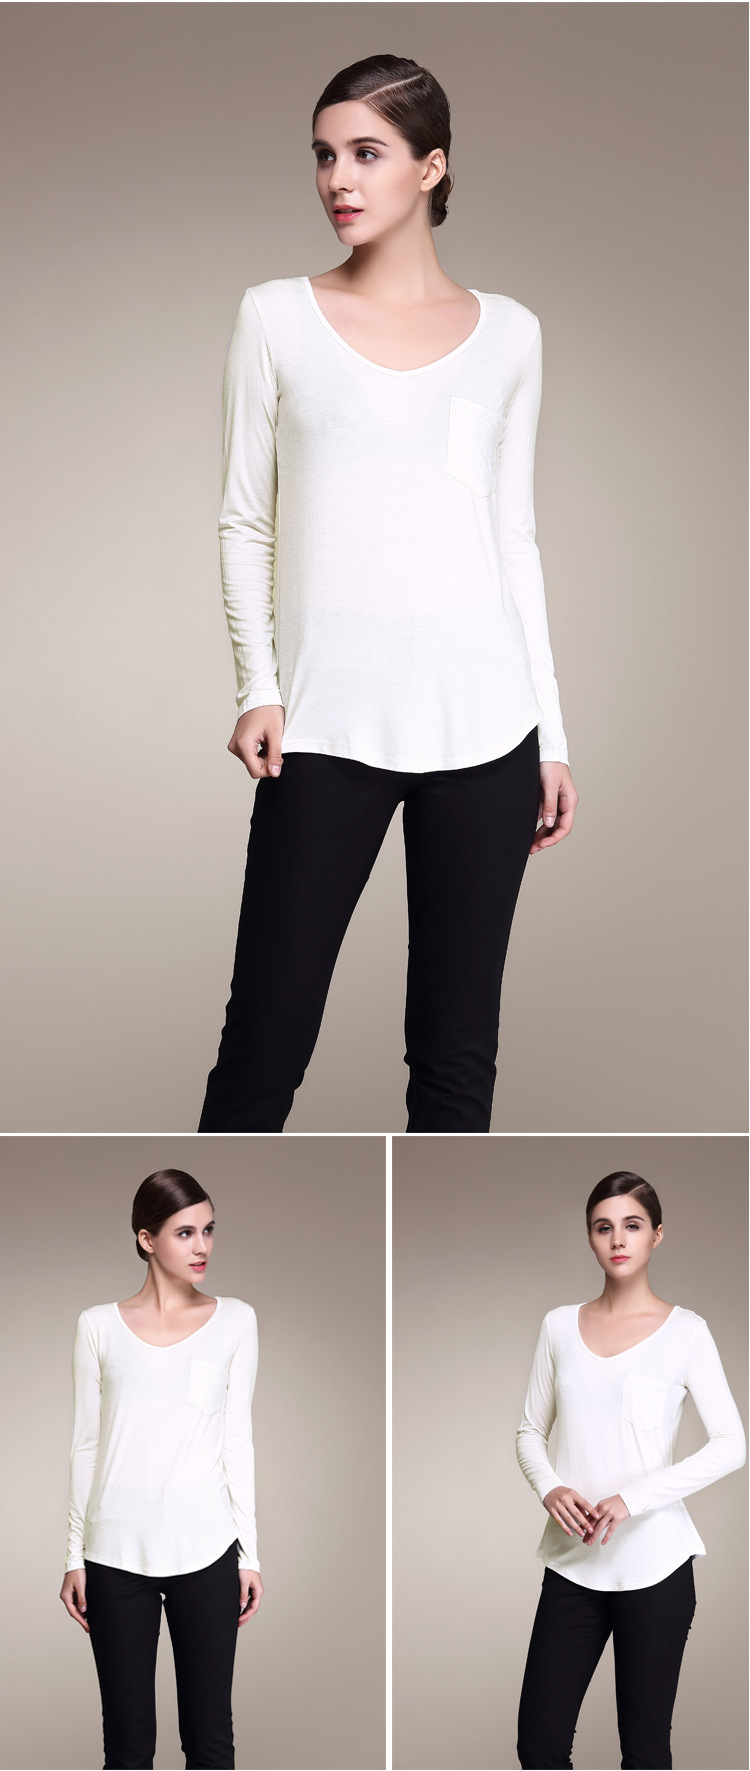 Female t-shirt modal loose women's large-size V-necklace shirt bottoming shirt new wholesale